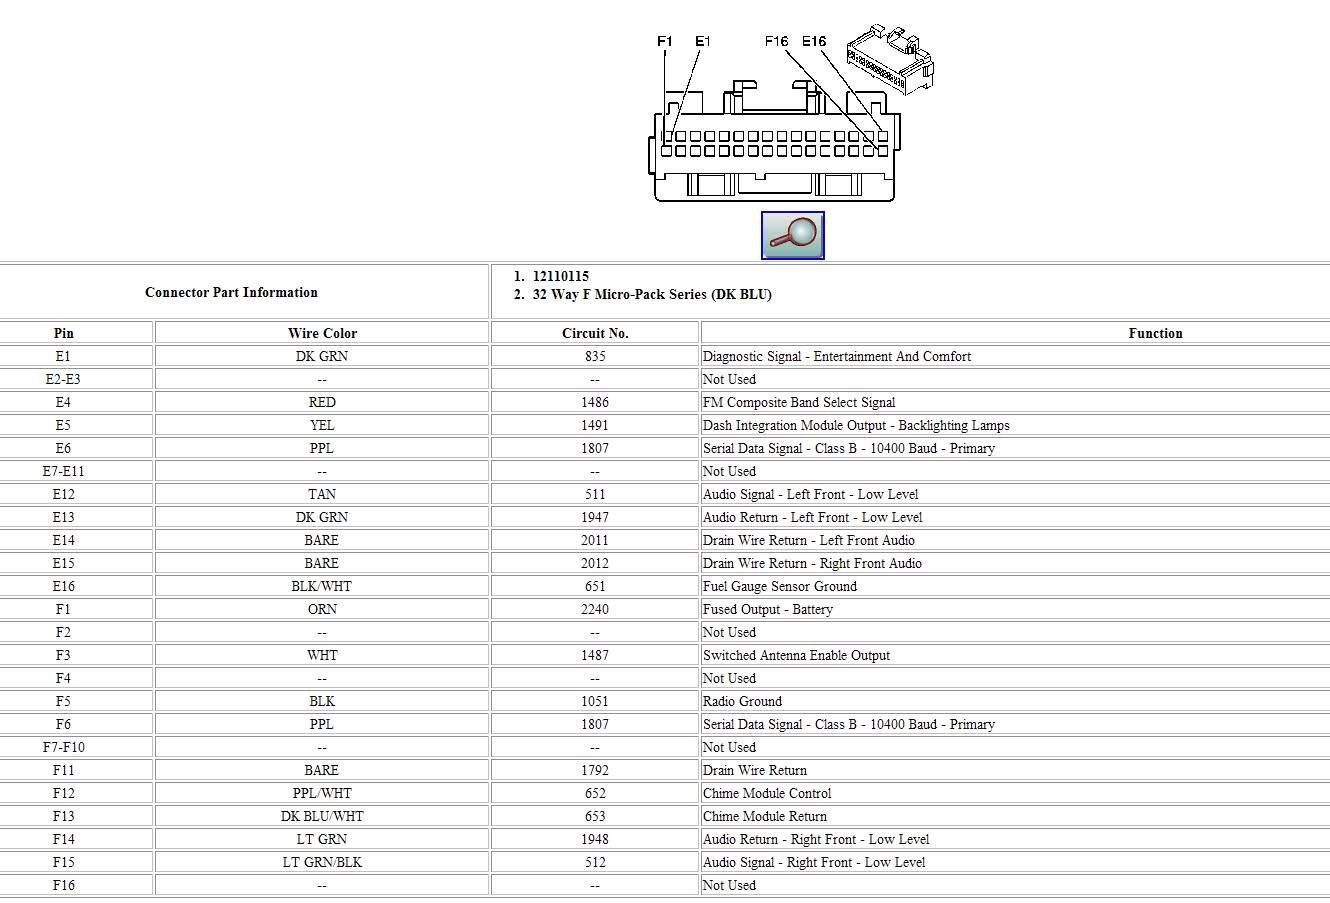 Escalade Radio Wiring Diagram on 1999 escalade wiring diagram, 2002 escalade wiring diagram, 2007 escalade wiring diagram, 2006 escalade wiring diagram, 2003 escalade door panel removal,